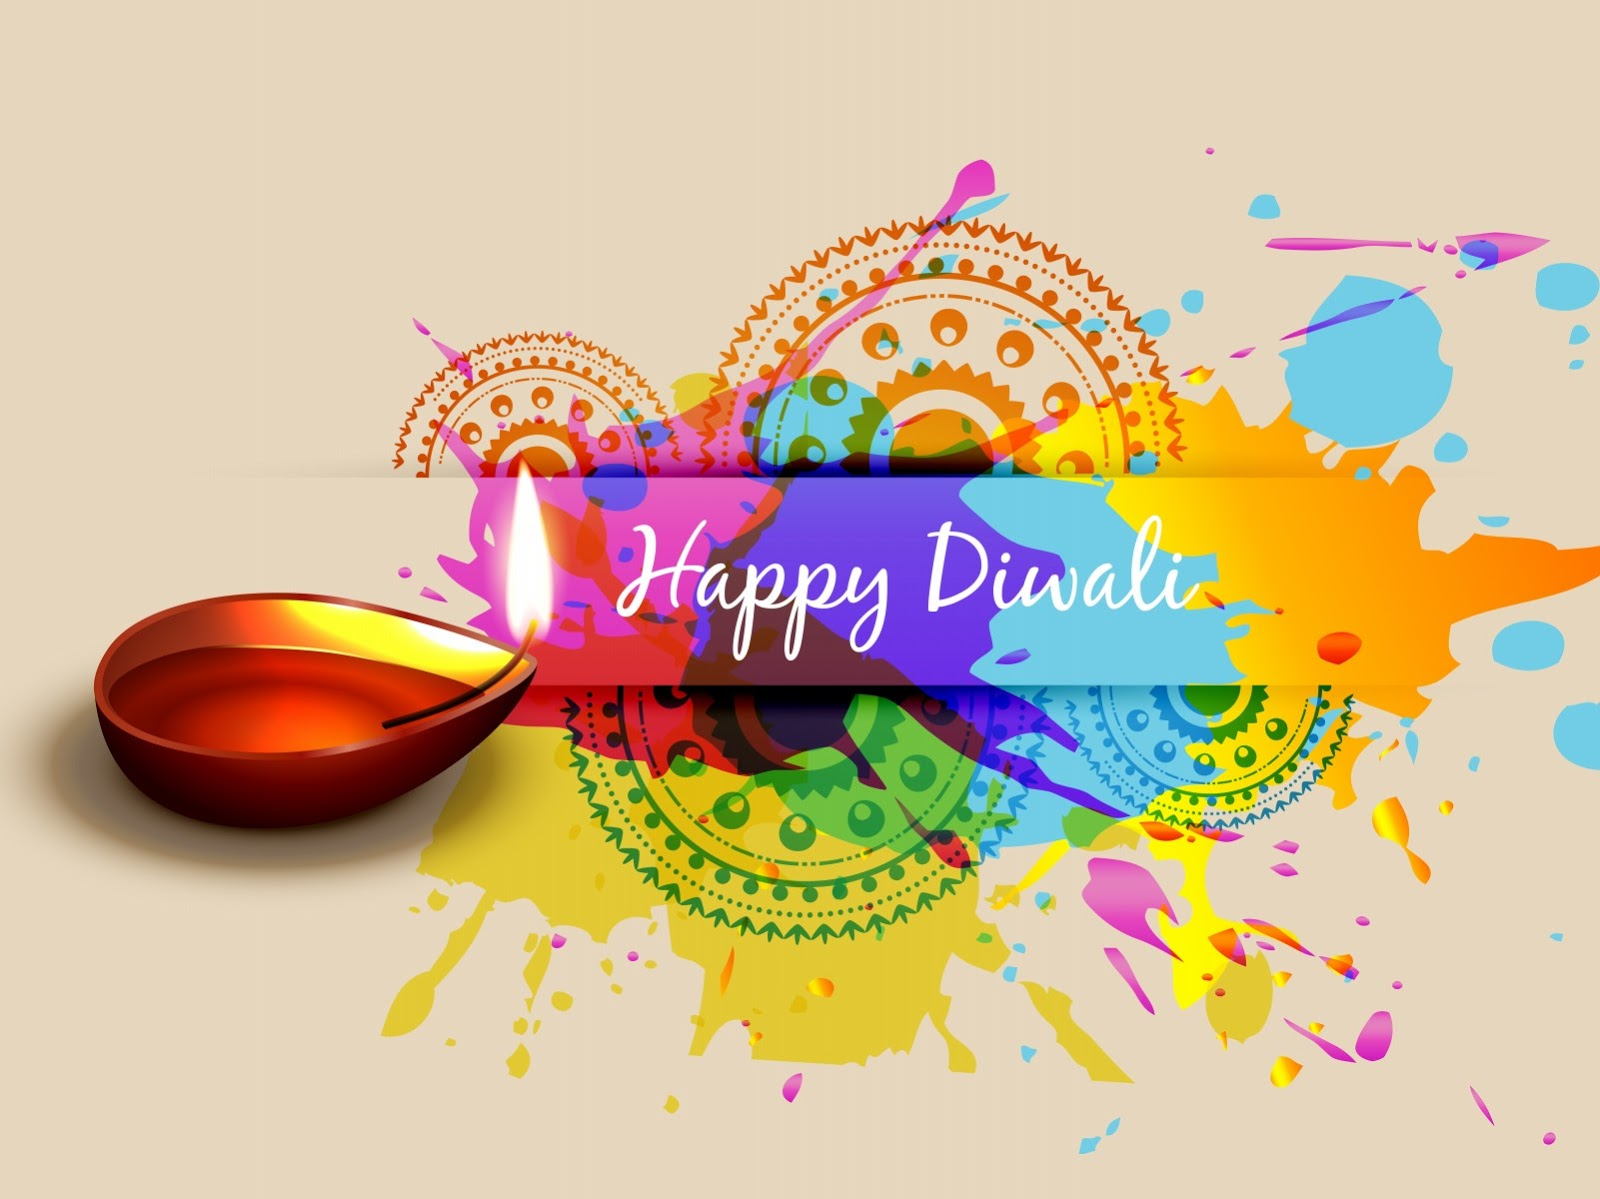 deepavali and images that depicts your emotions life  diwali greetings cards